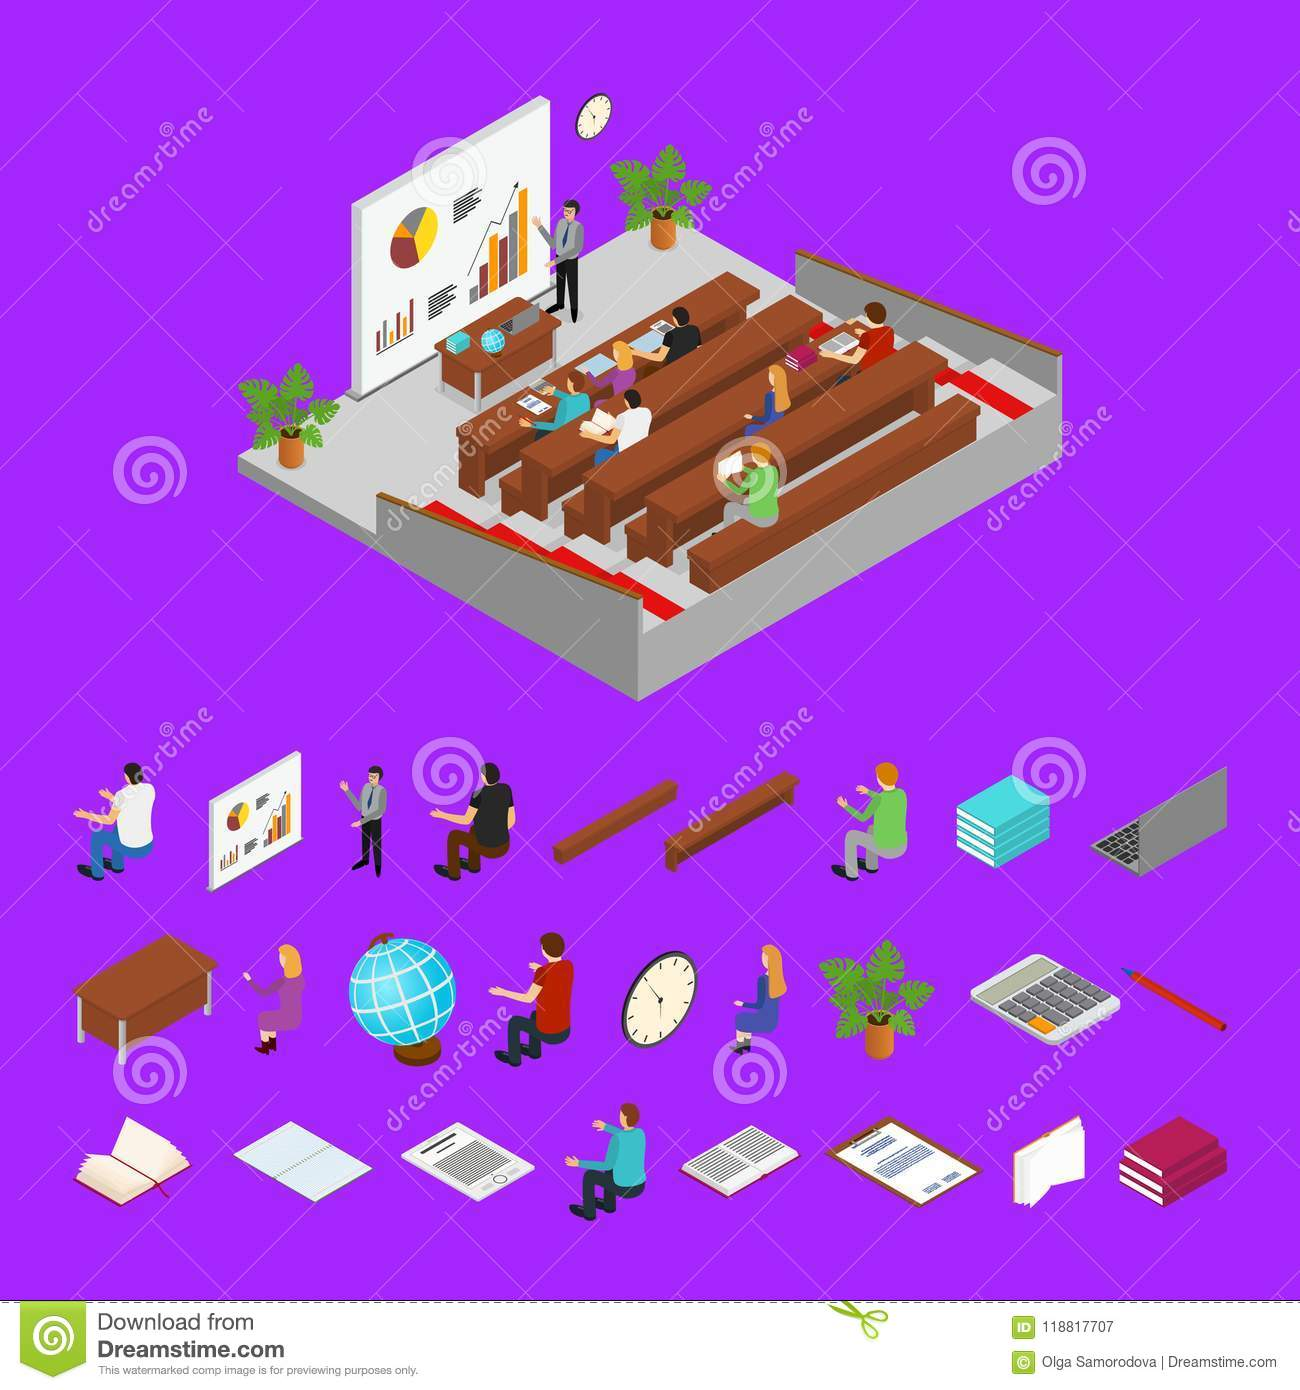 Classroom Interior With Furniture Parts And Students Isometric View Technology Computers Class Vector